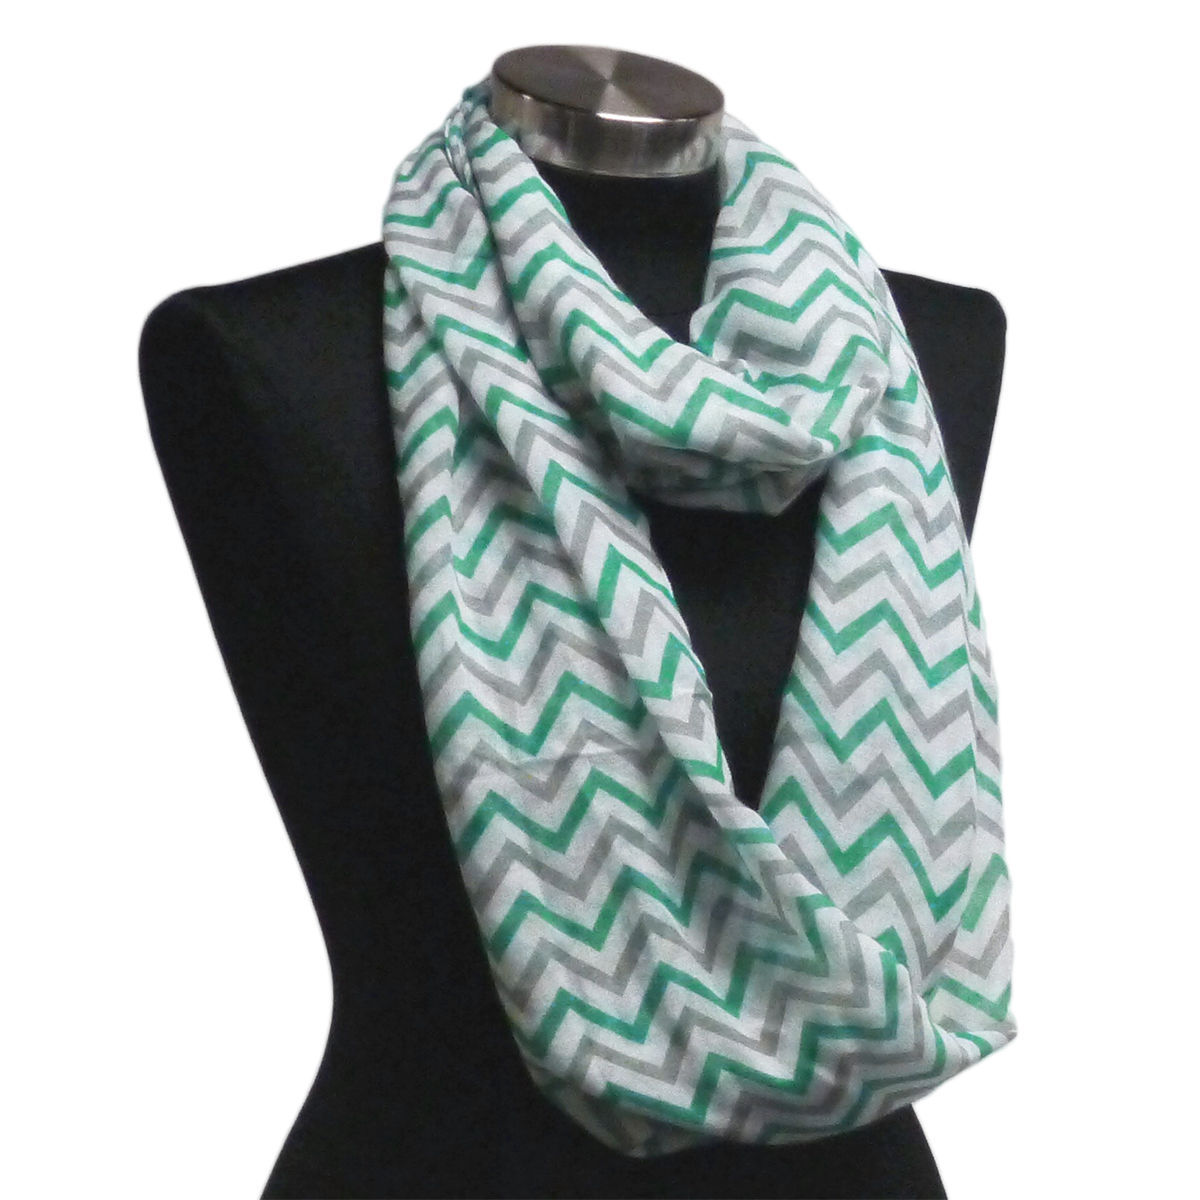 Primary image for Chevron Sheer Infinity Scarf Green & Grey & White Contrasting Colors US Seller